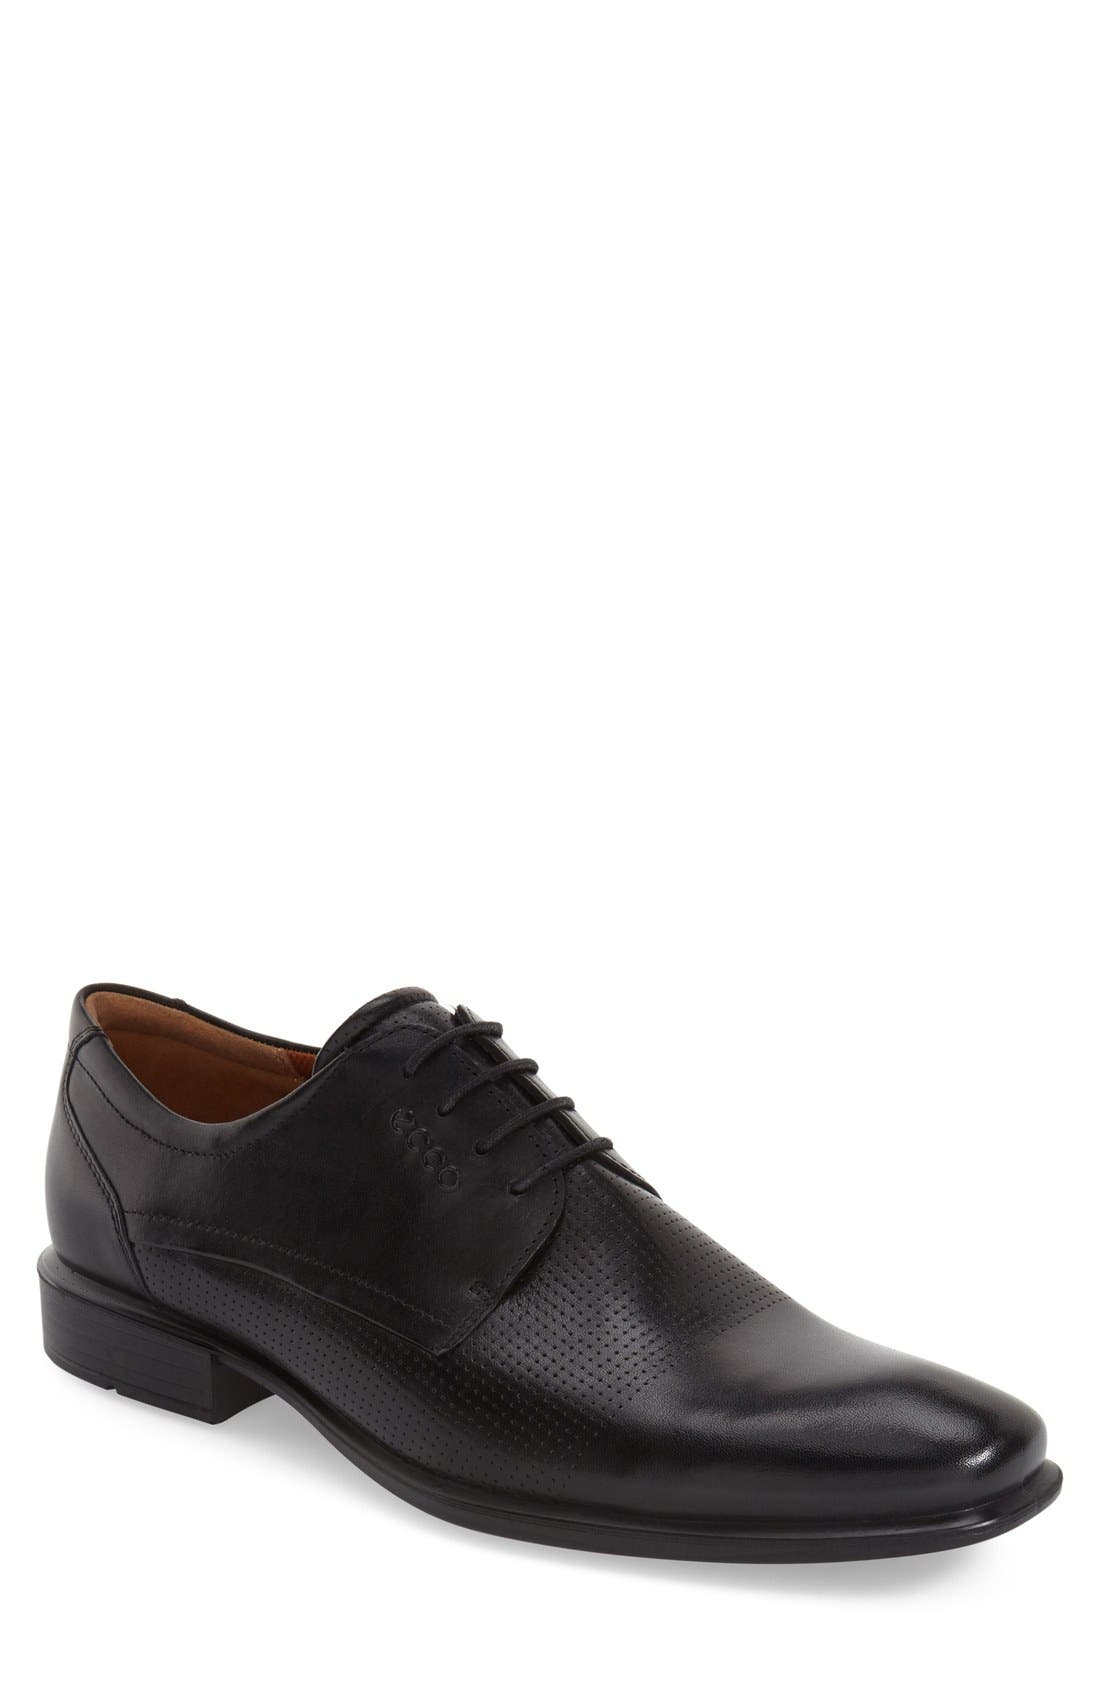 ECCO 'Cairo' Perforated Plain Toe Derby